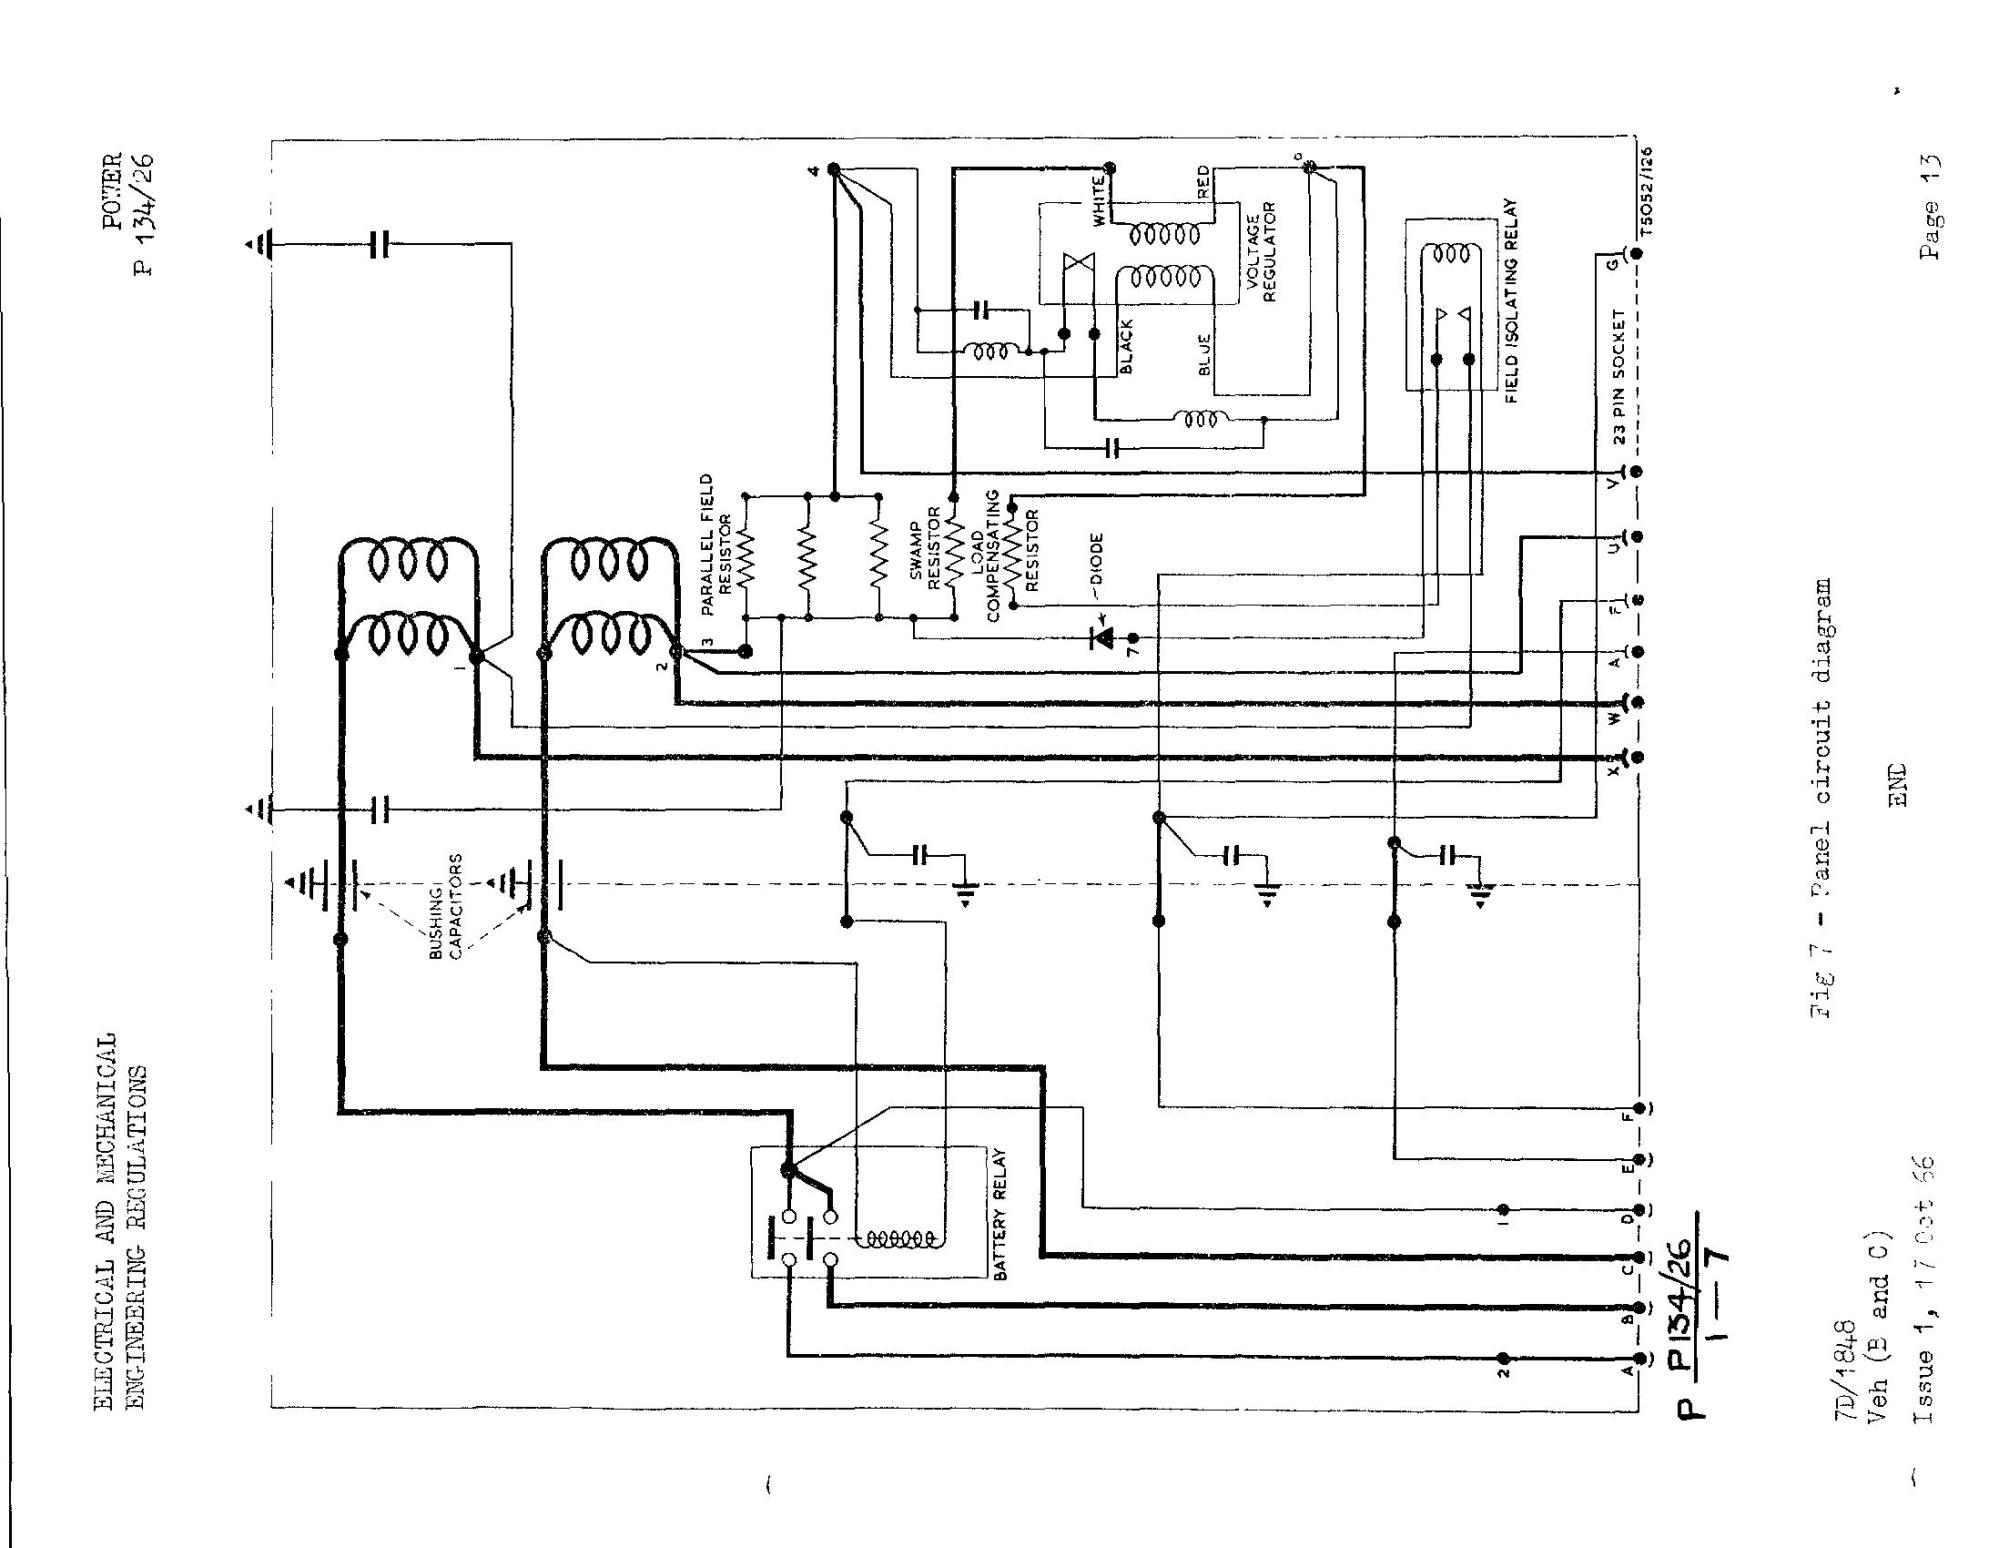 hight resolution of 87 jeep yj wiring diagram